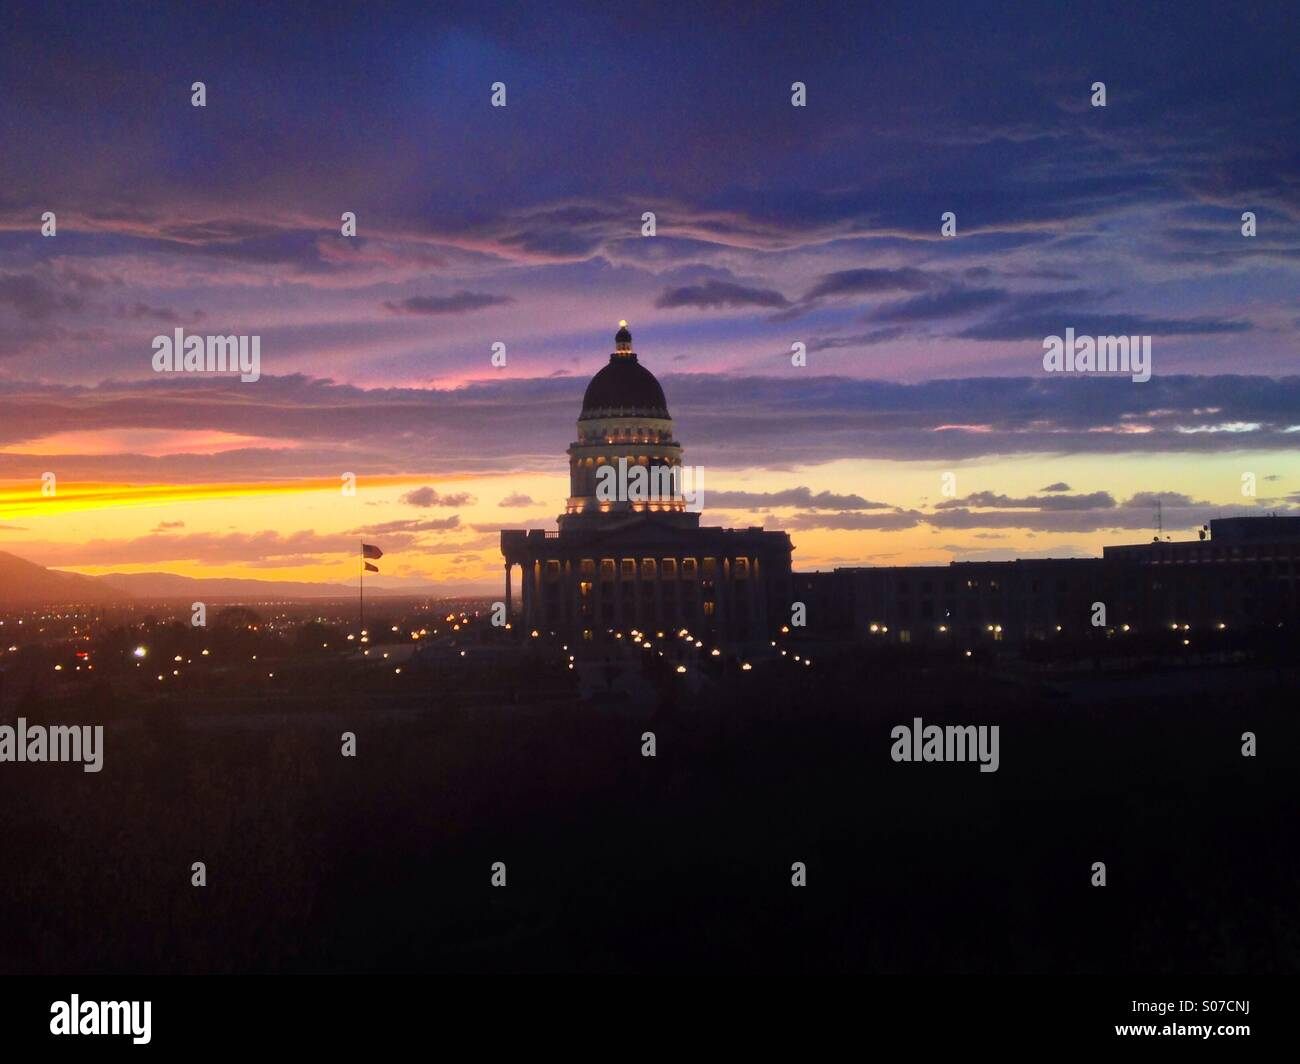 Sunset over the Utah State Capitol building in Salt Lake City. - Stock Image